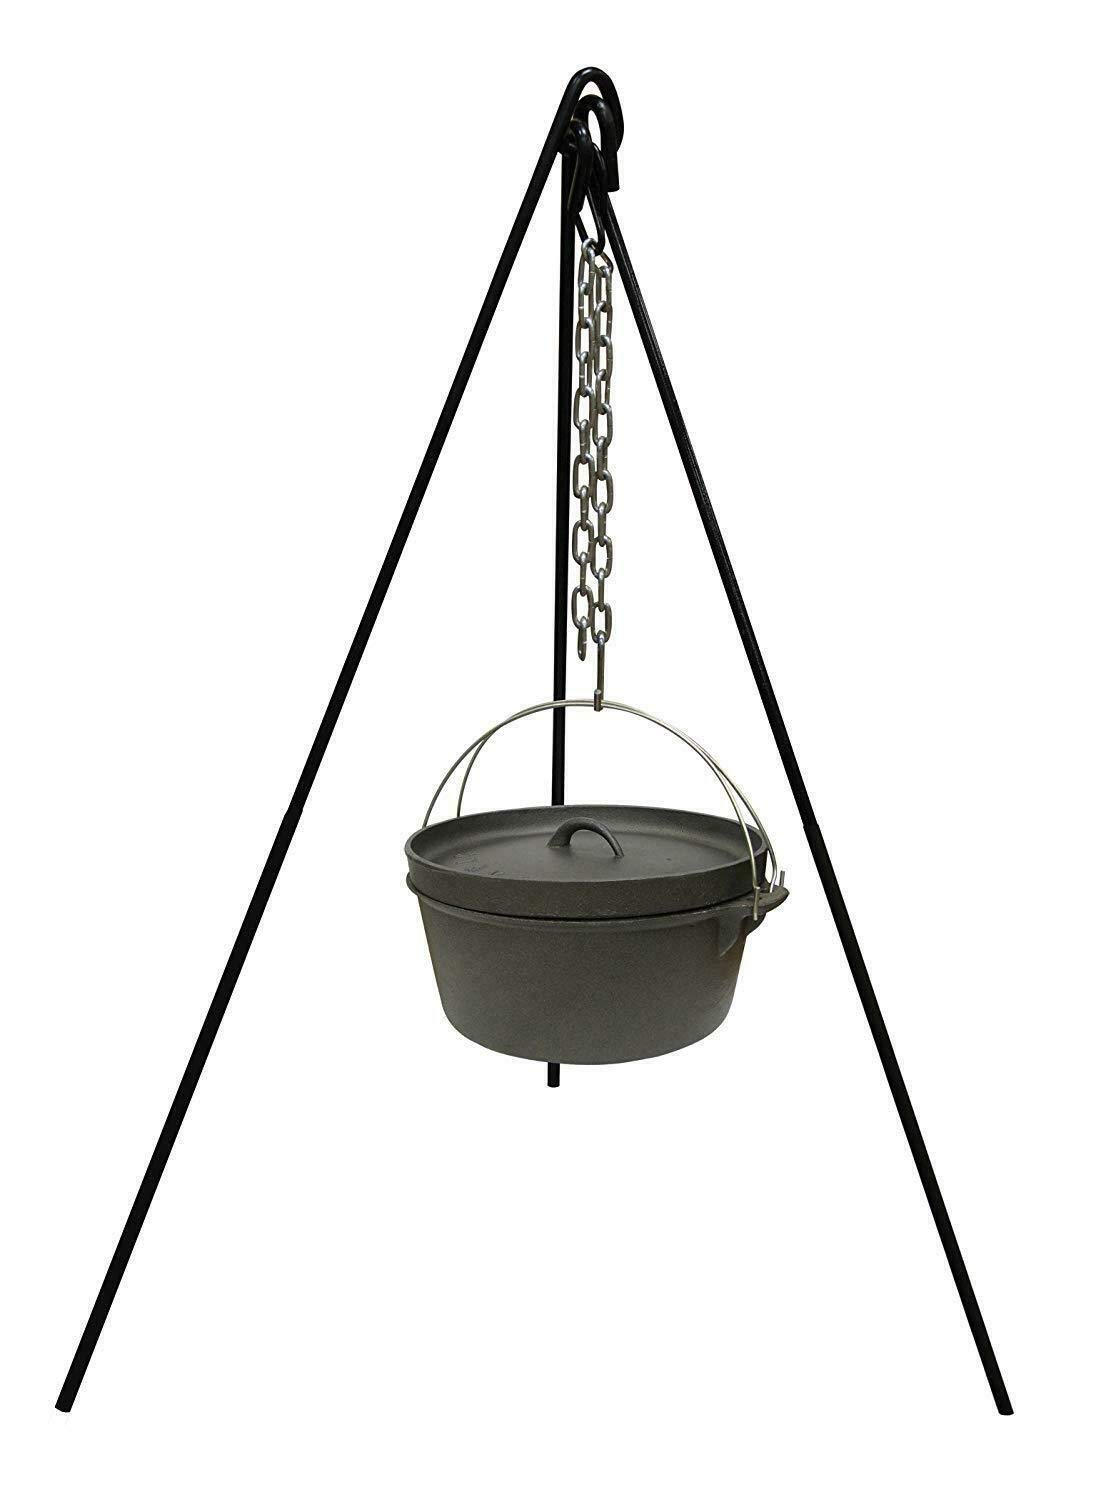 WWX Tripod Camping Outdoor Cooking Campfire Picnic Pot Cast Iron Fire Grill Oven New by WWX